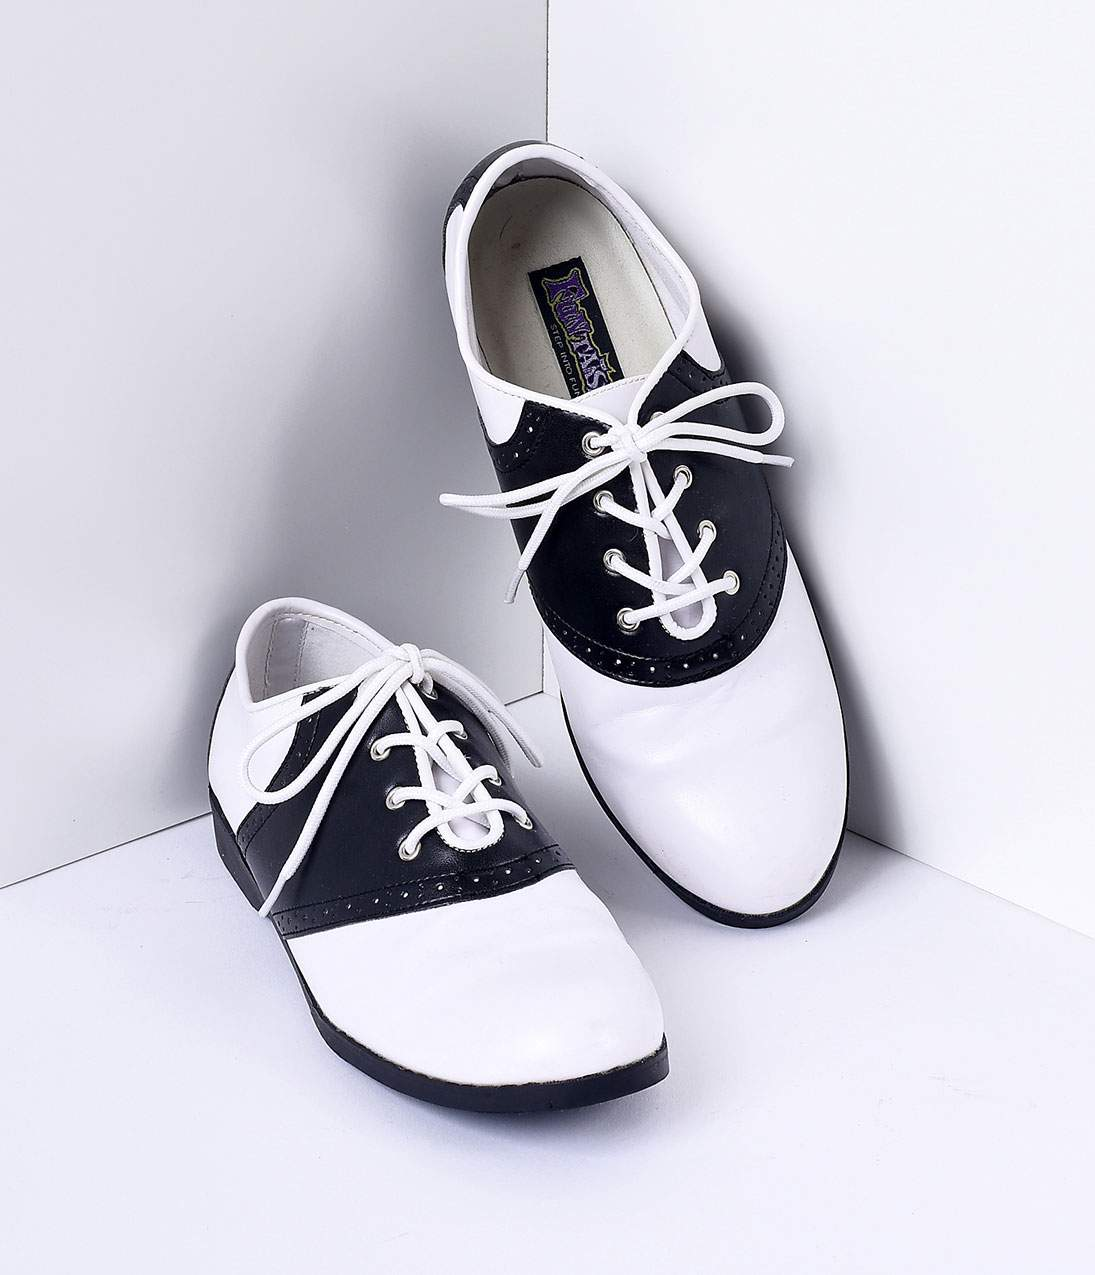 39d4f273be26c Black & White Classic Lace Up Saddle Shoes – Unique Vintage